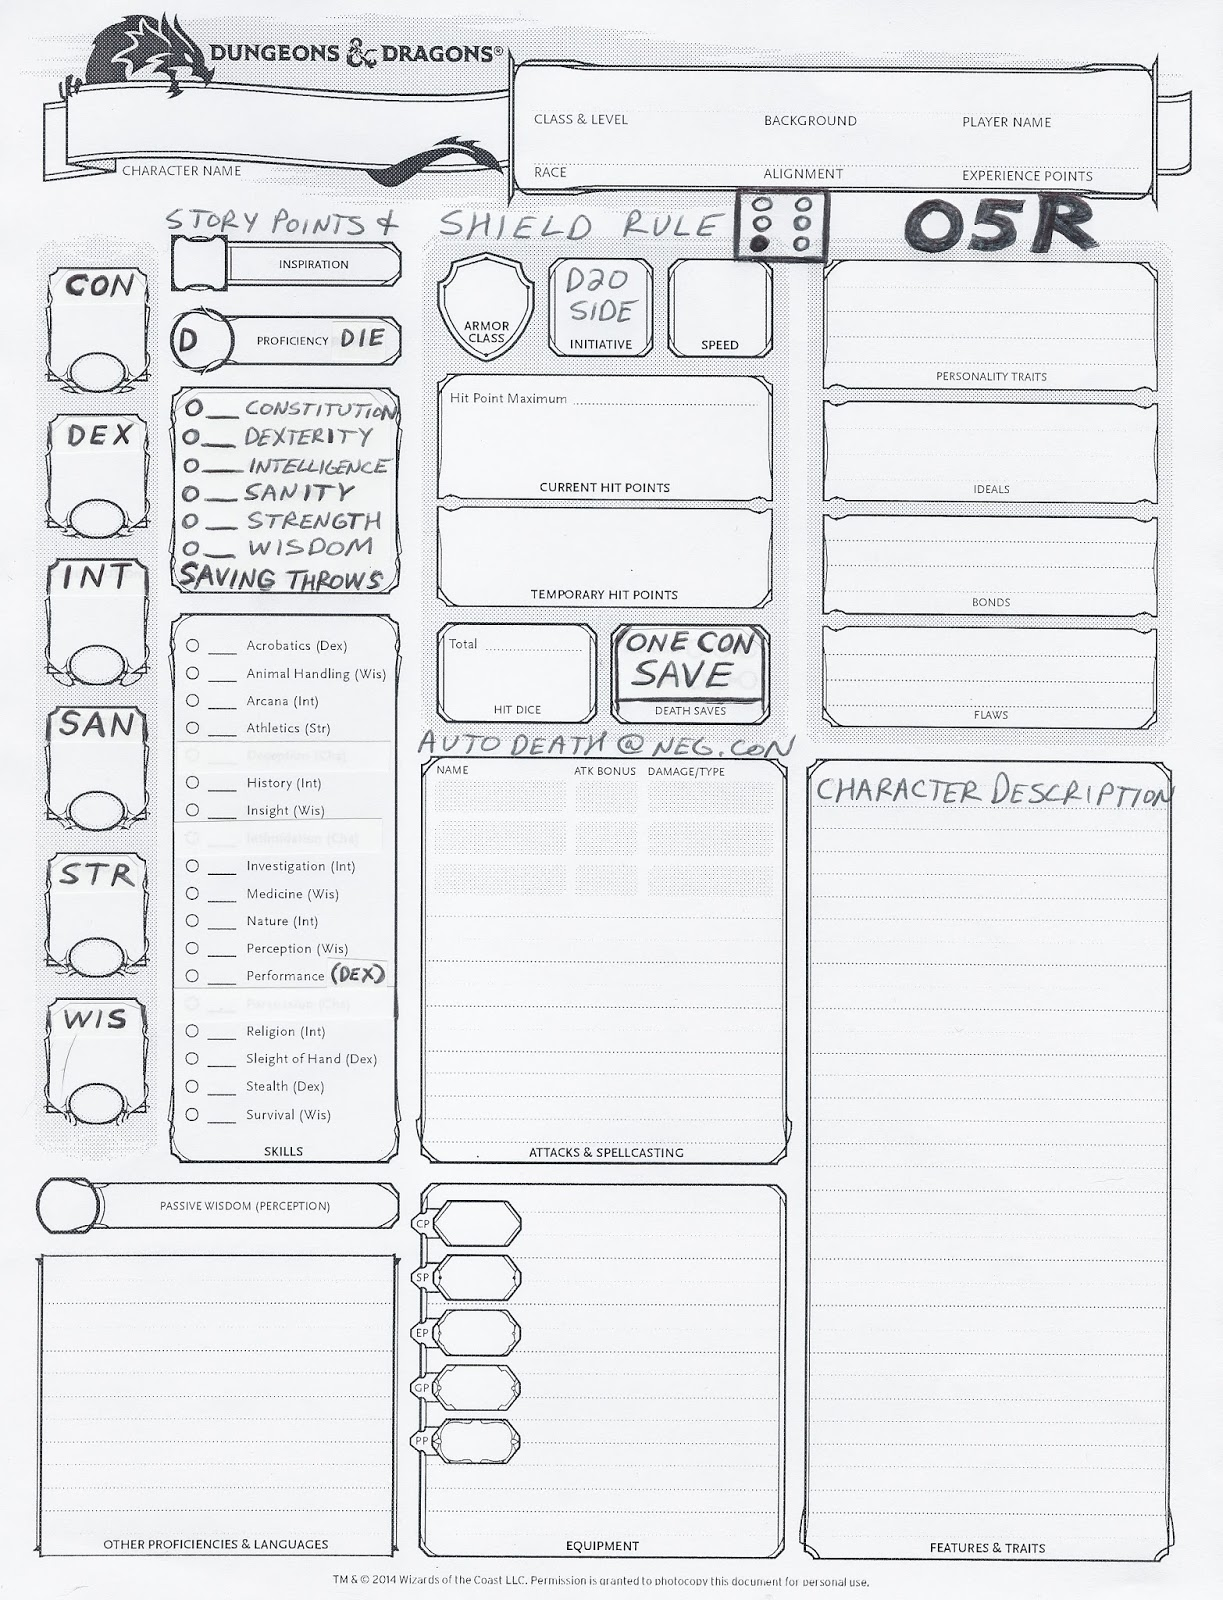 Striking image intended for dungeons and dragons character sheet printable